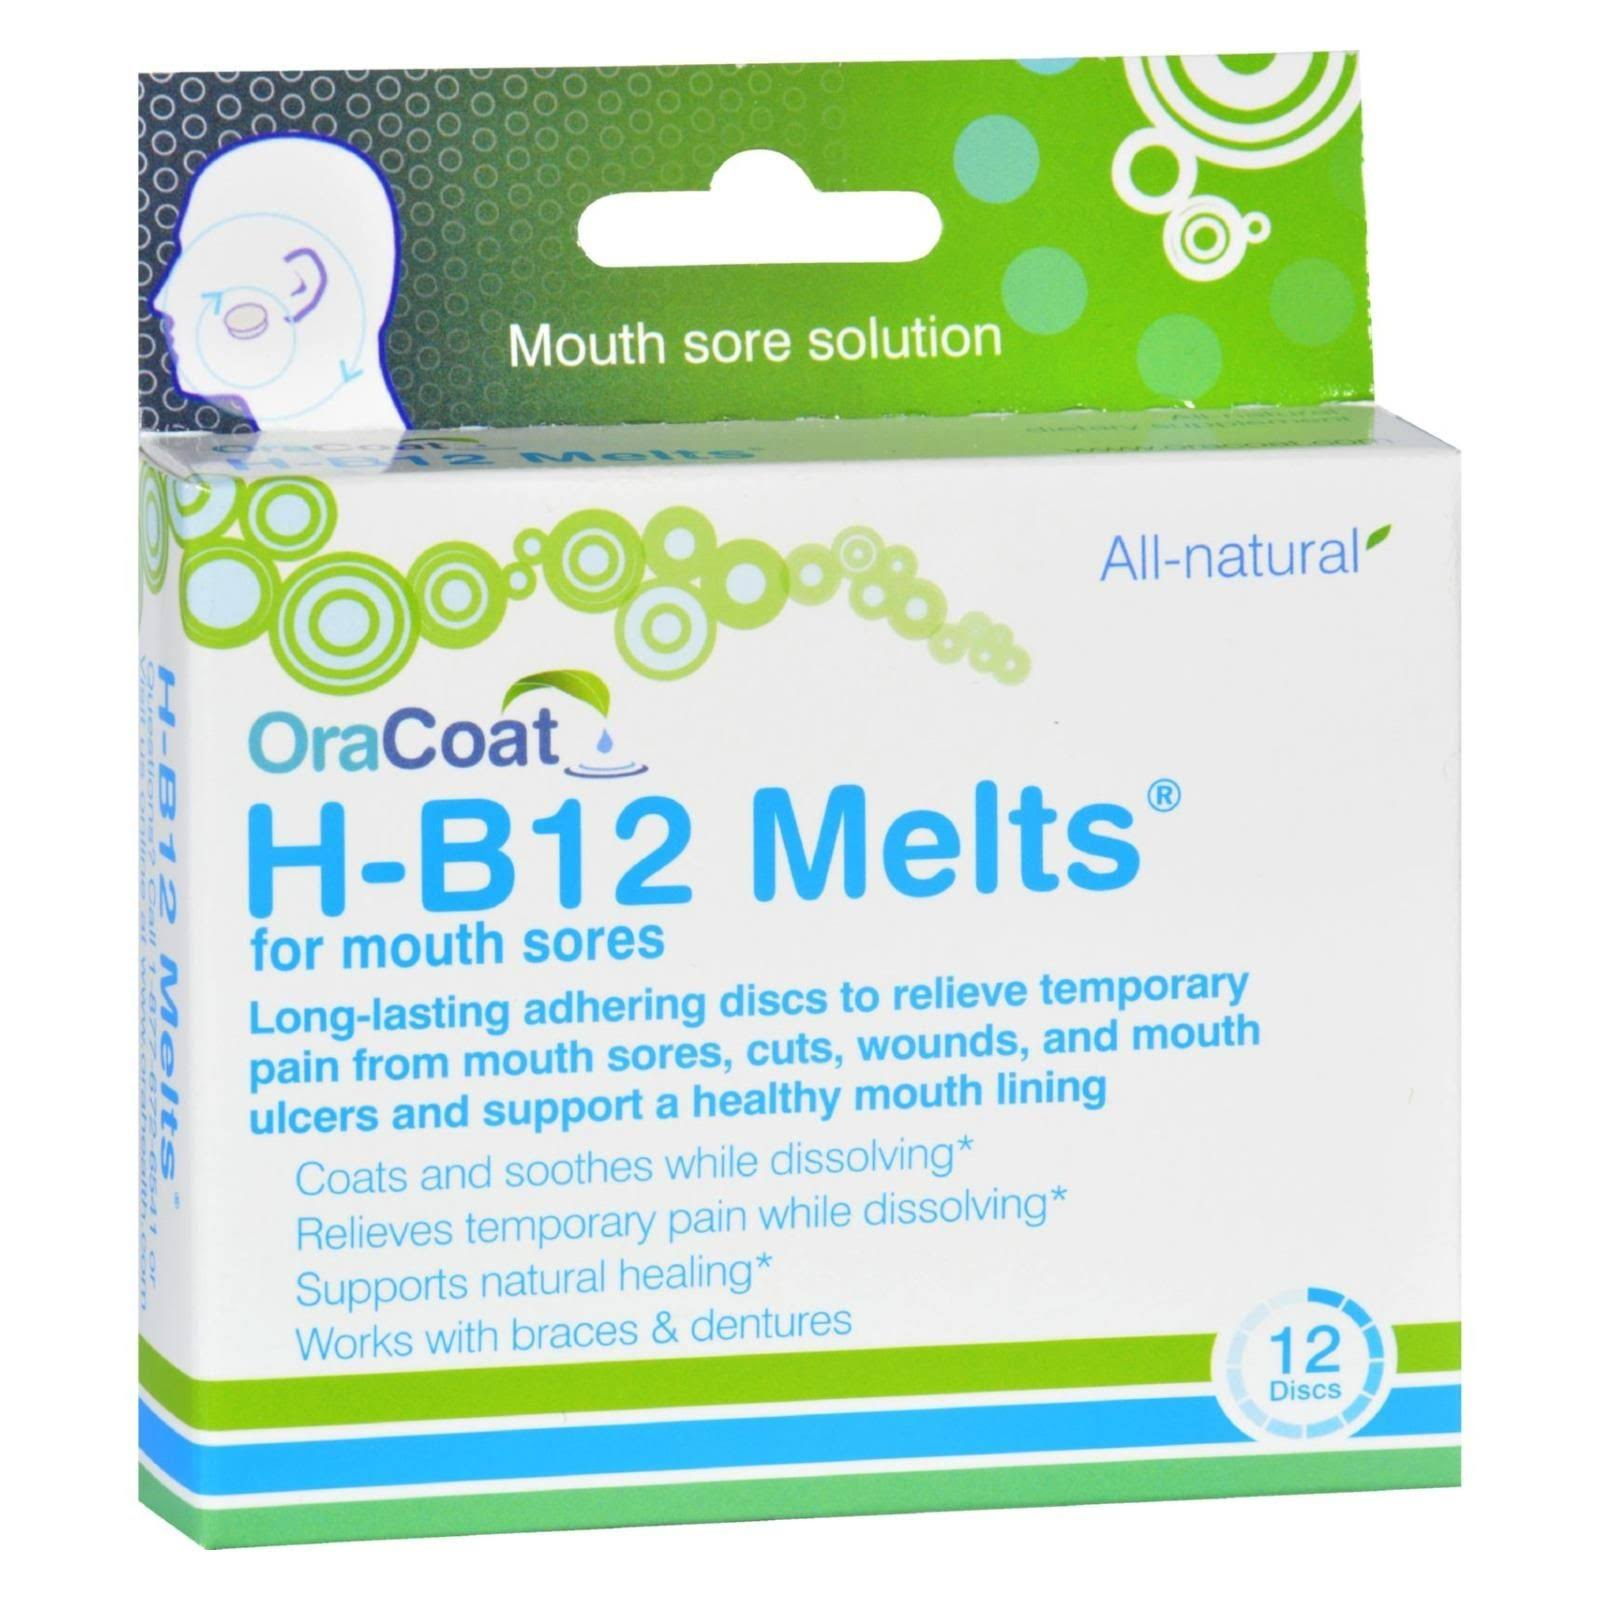 Oracoat H B12 Melts Mouth Sores - 12ct